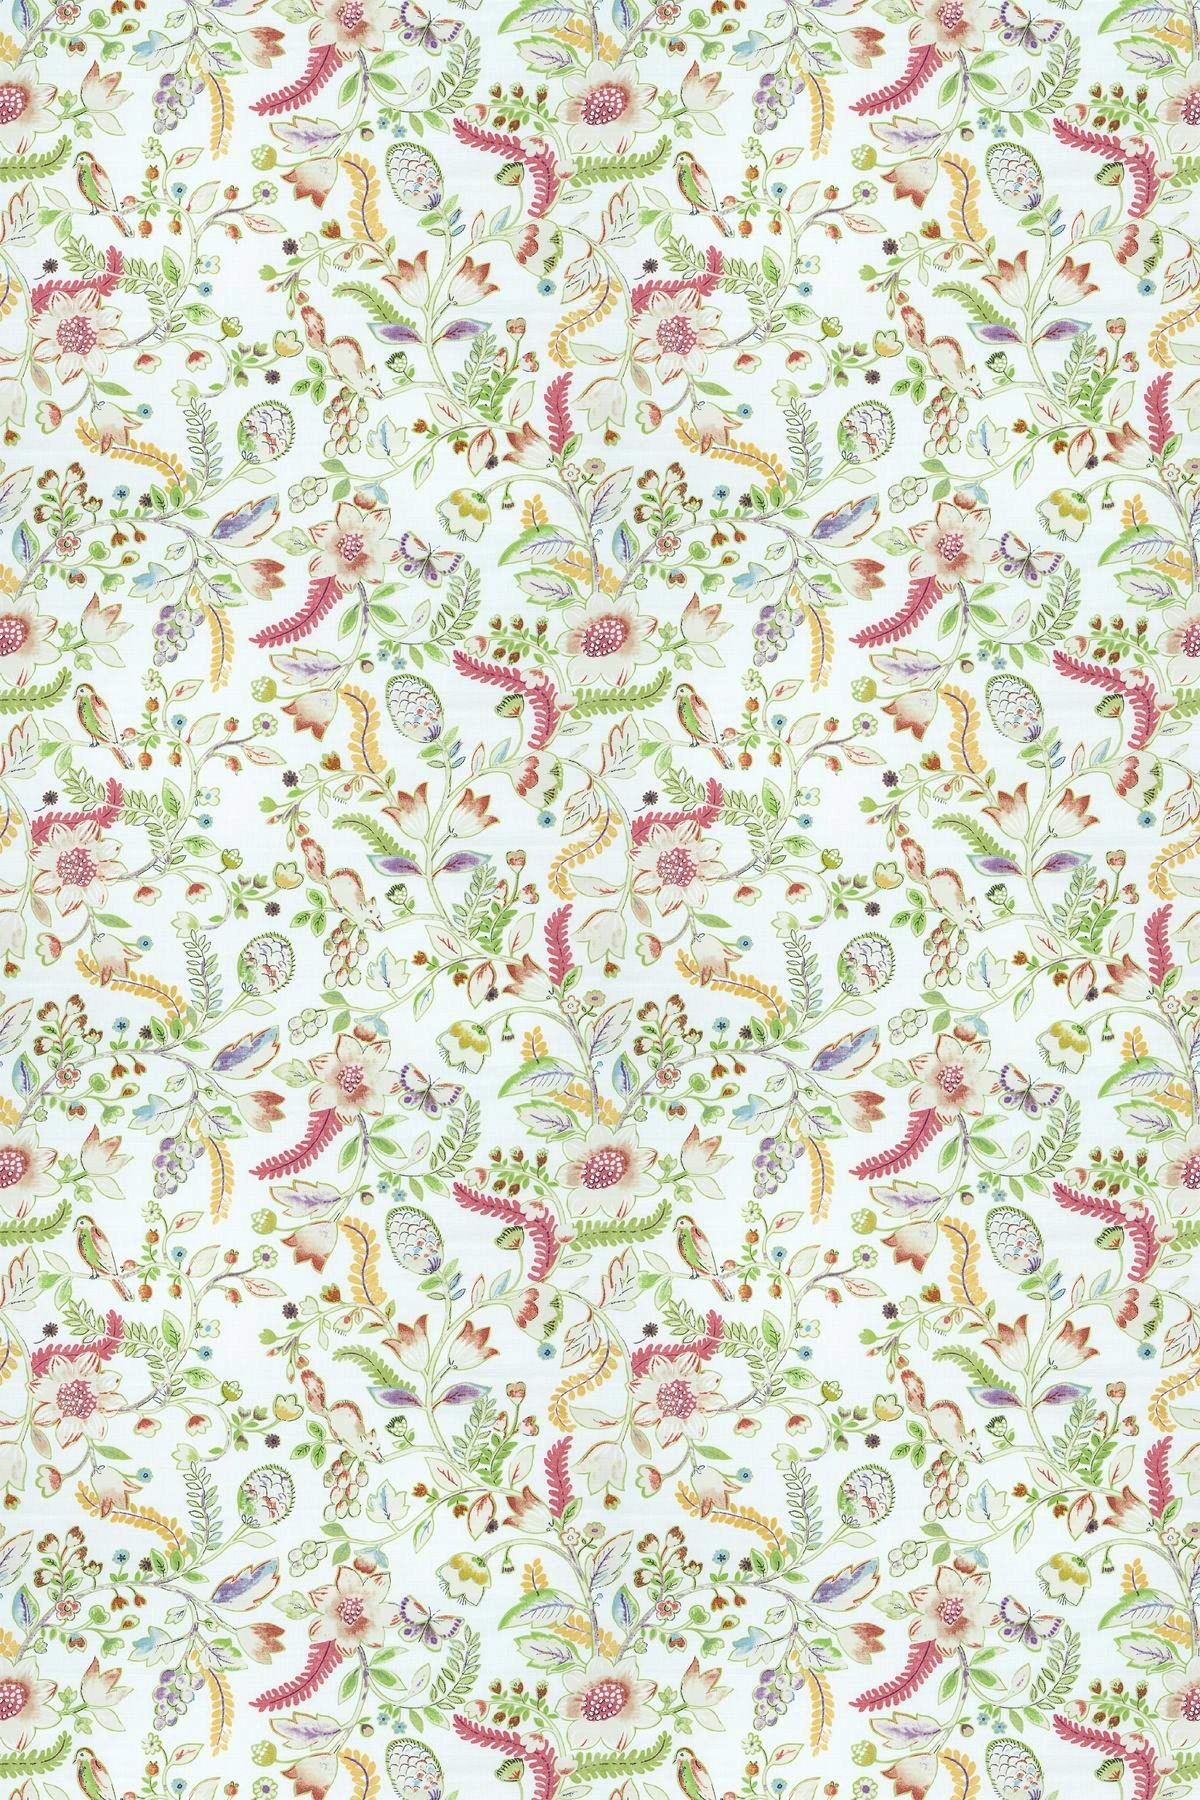 Image of Blendworth Fabric Daydreamer, Daydream/001